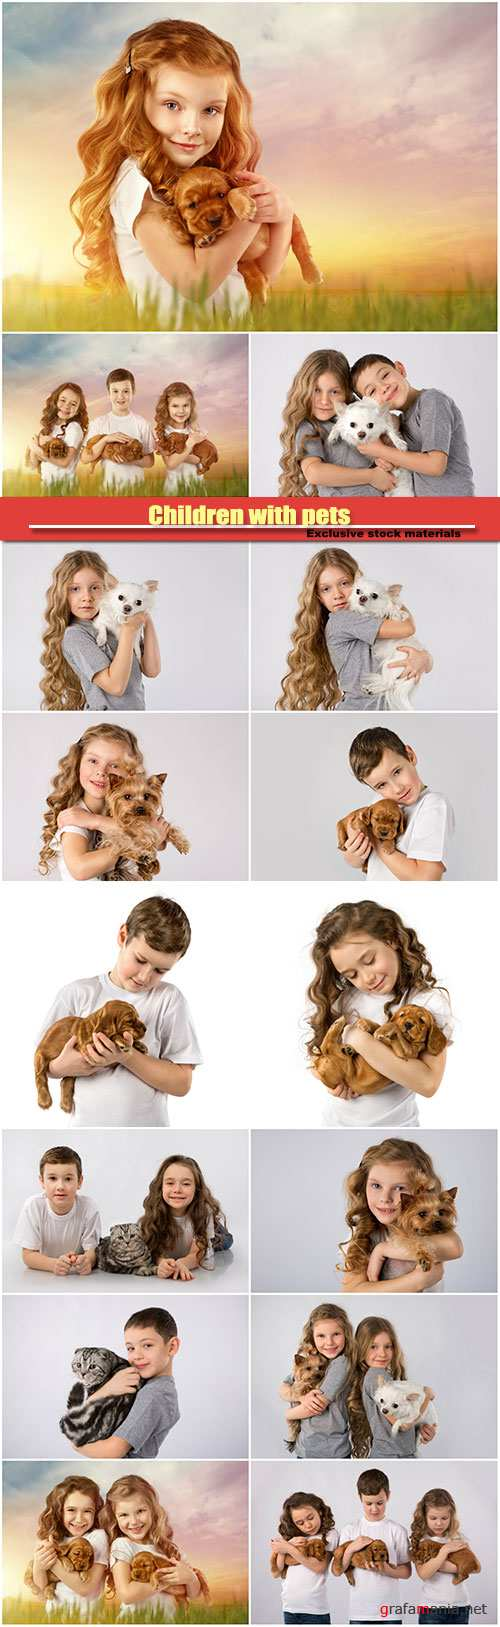 Children with pets, cat and a dog